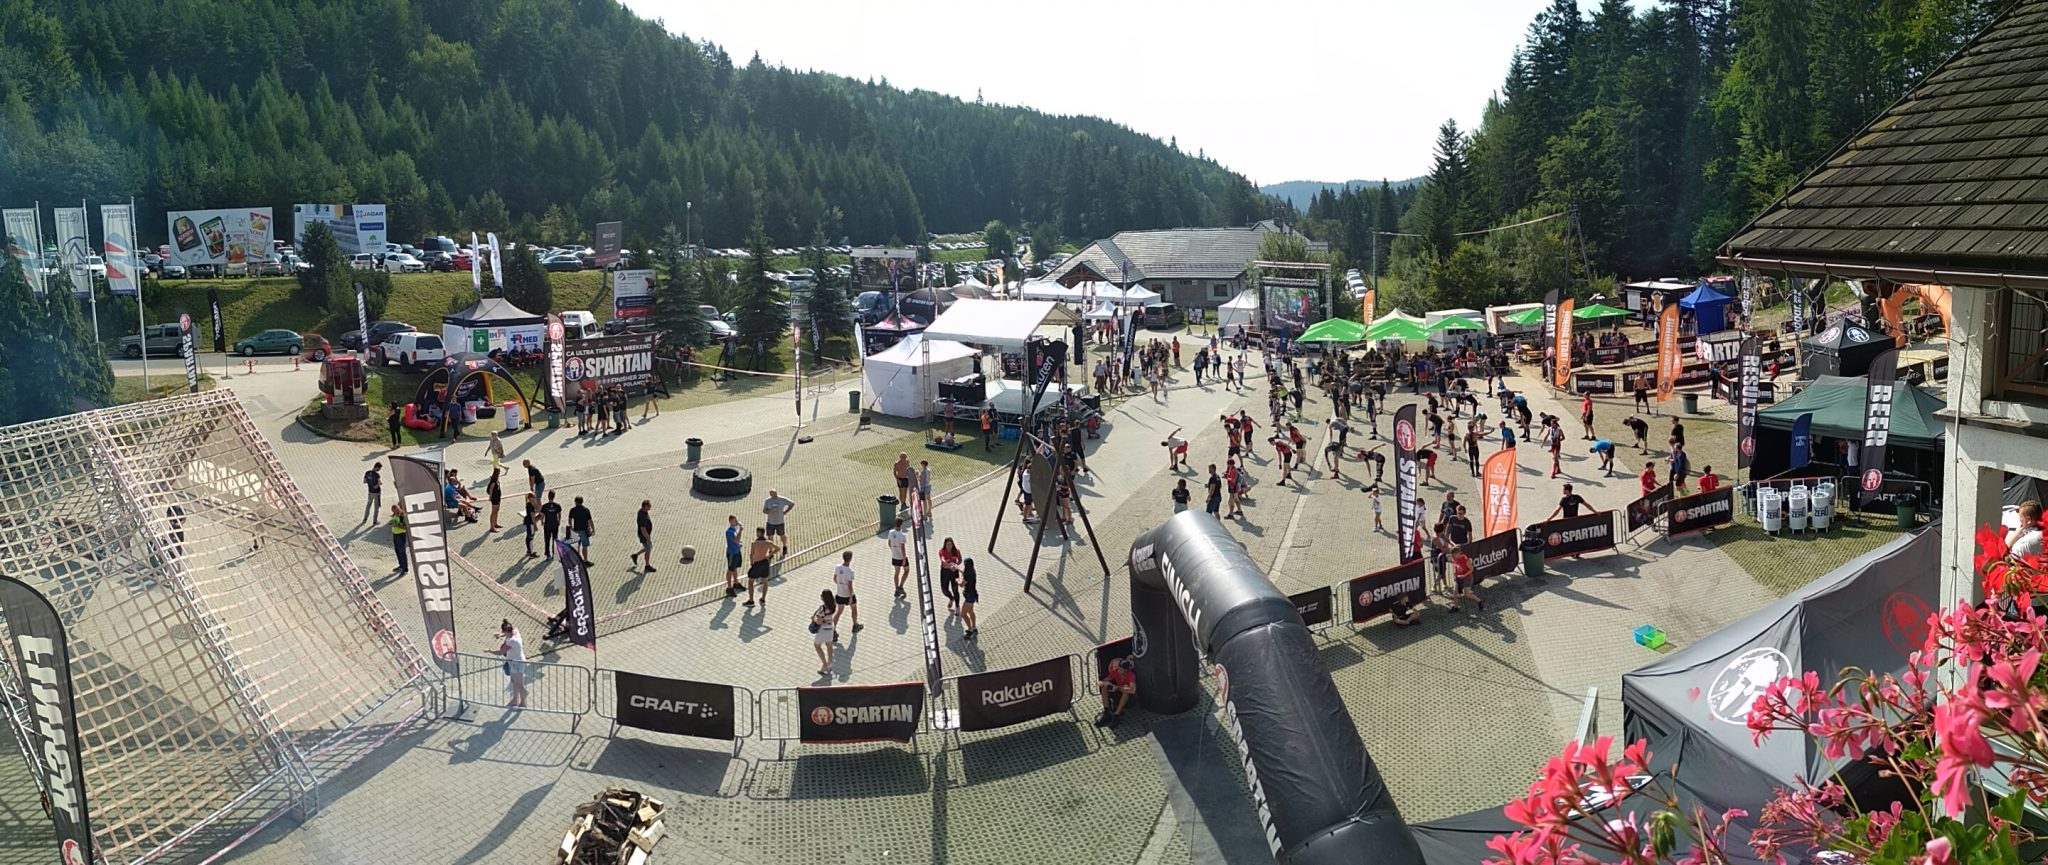 Spartan Krynica festival panoramic view